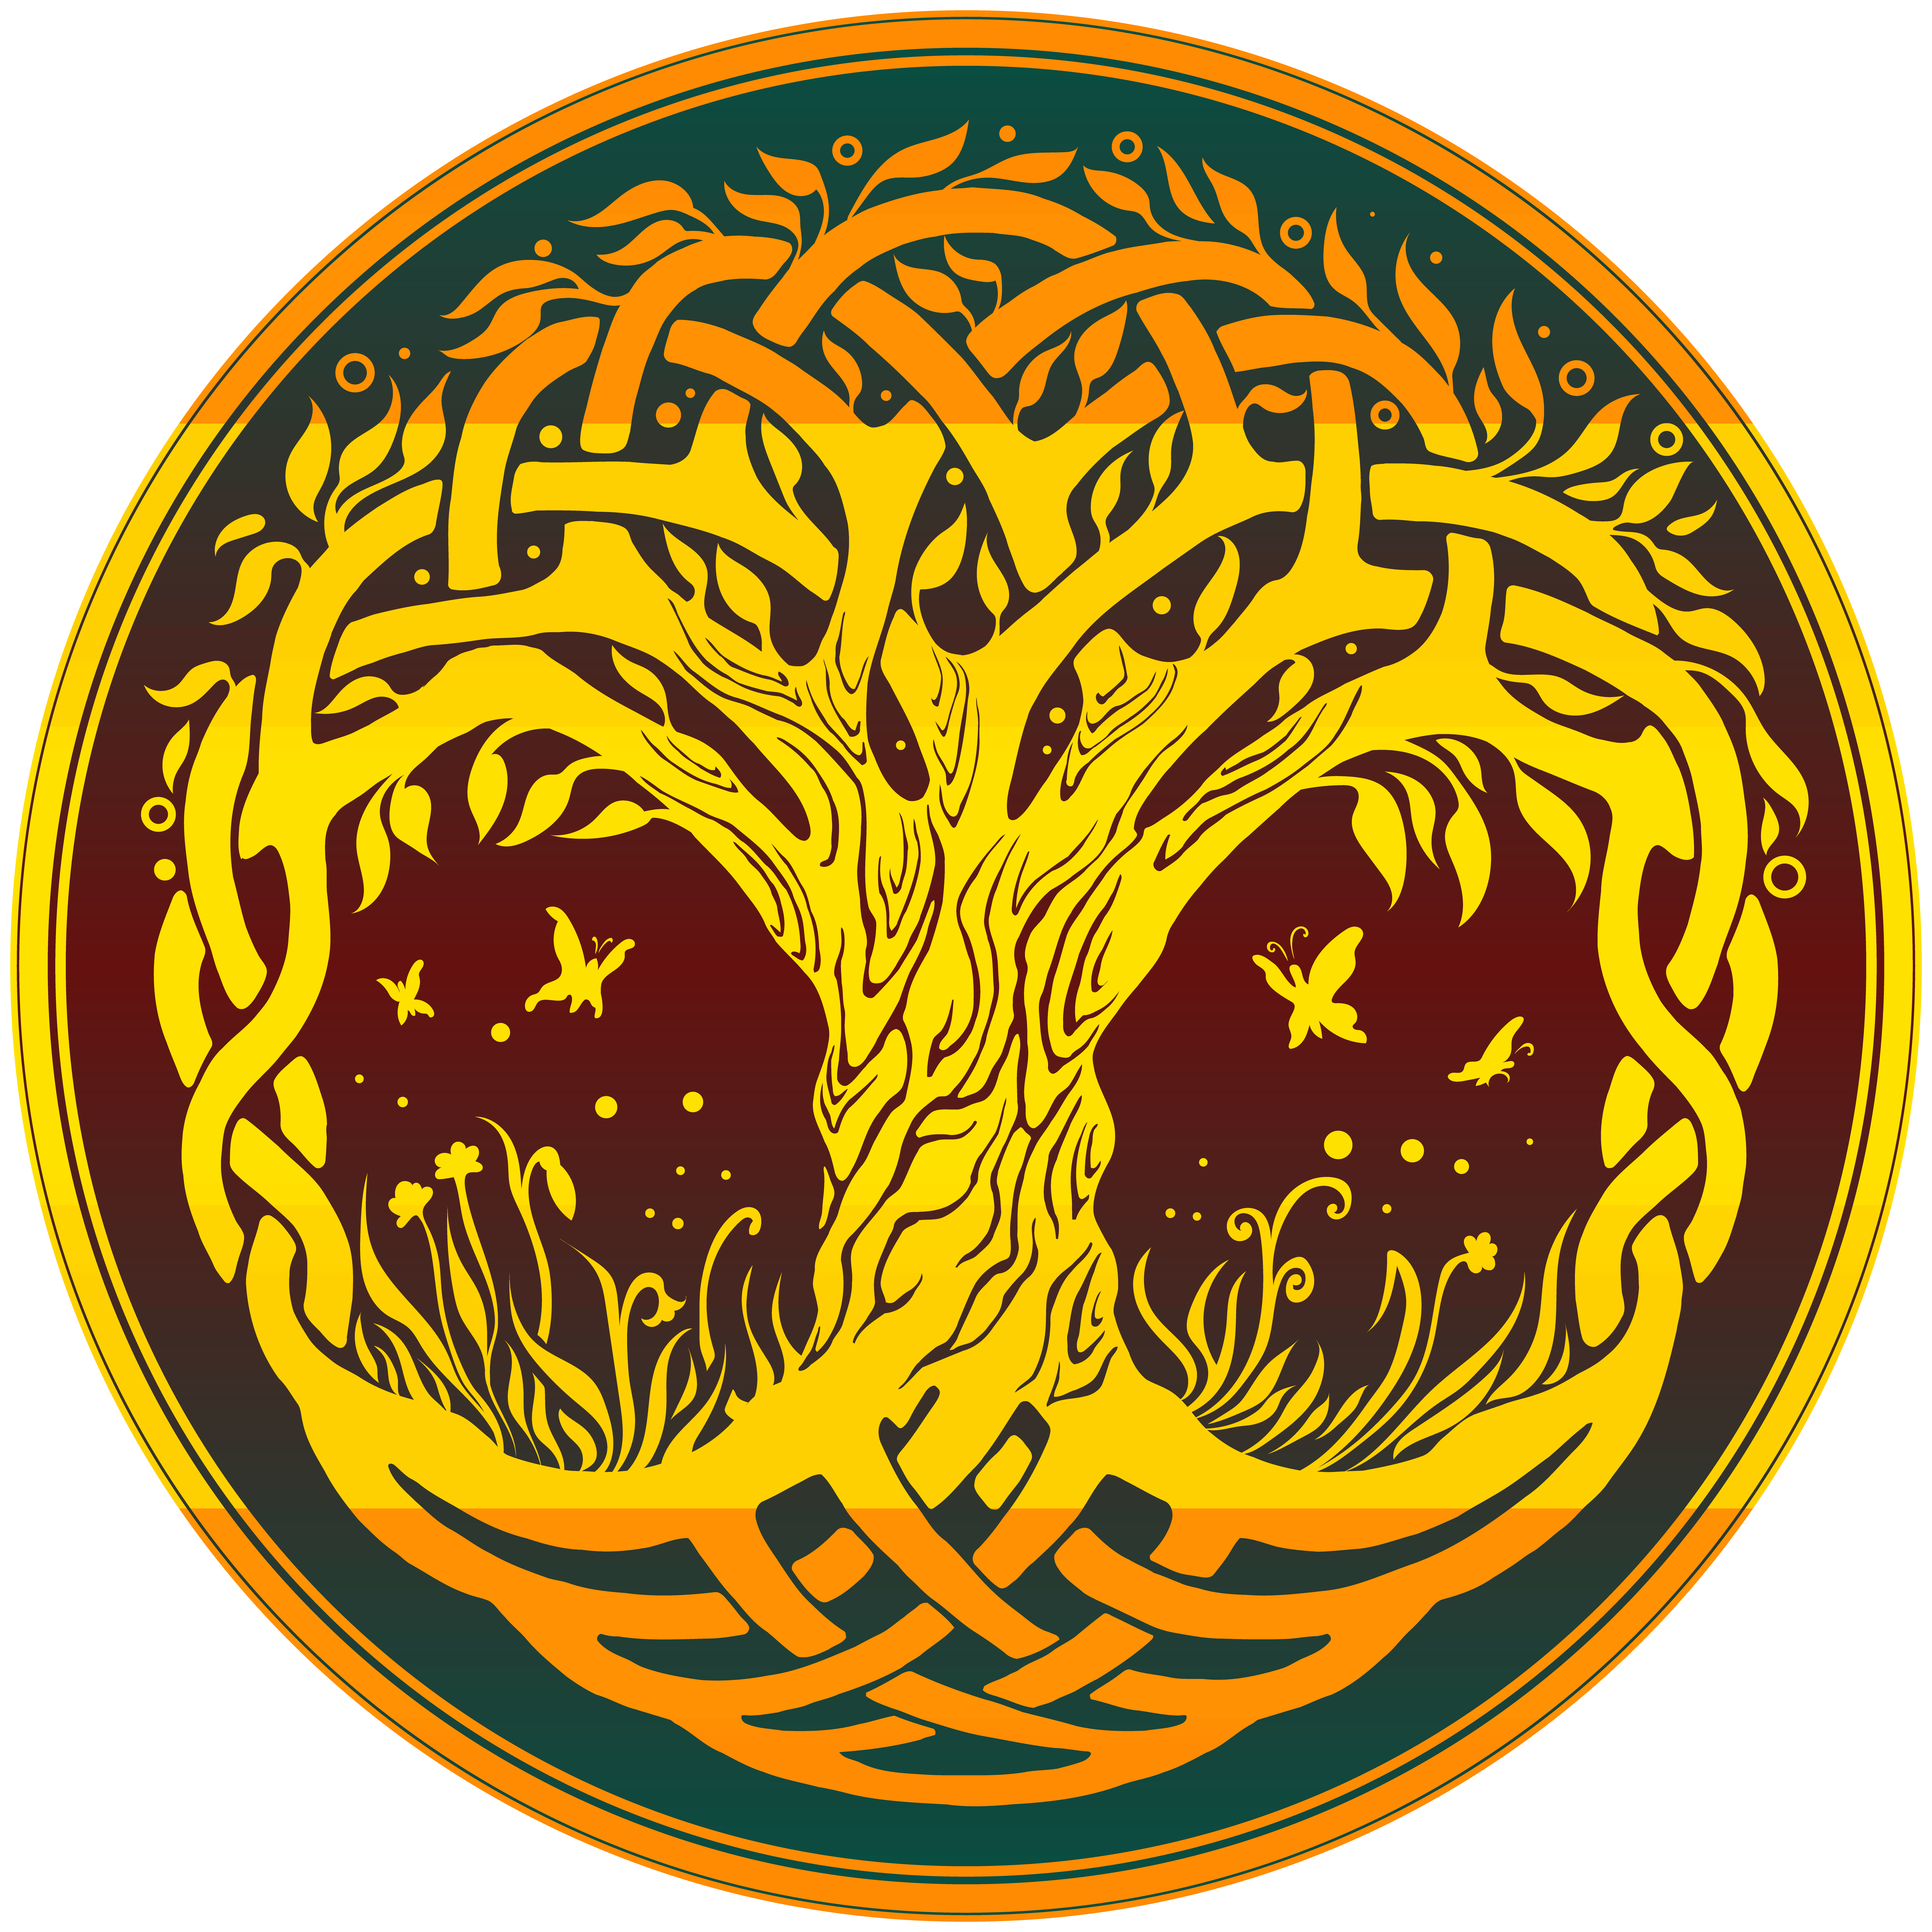 Celtic Tree of Life Knot Meaning Explained